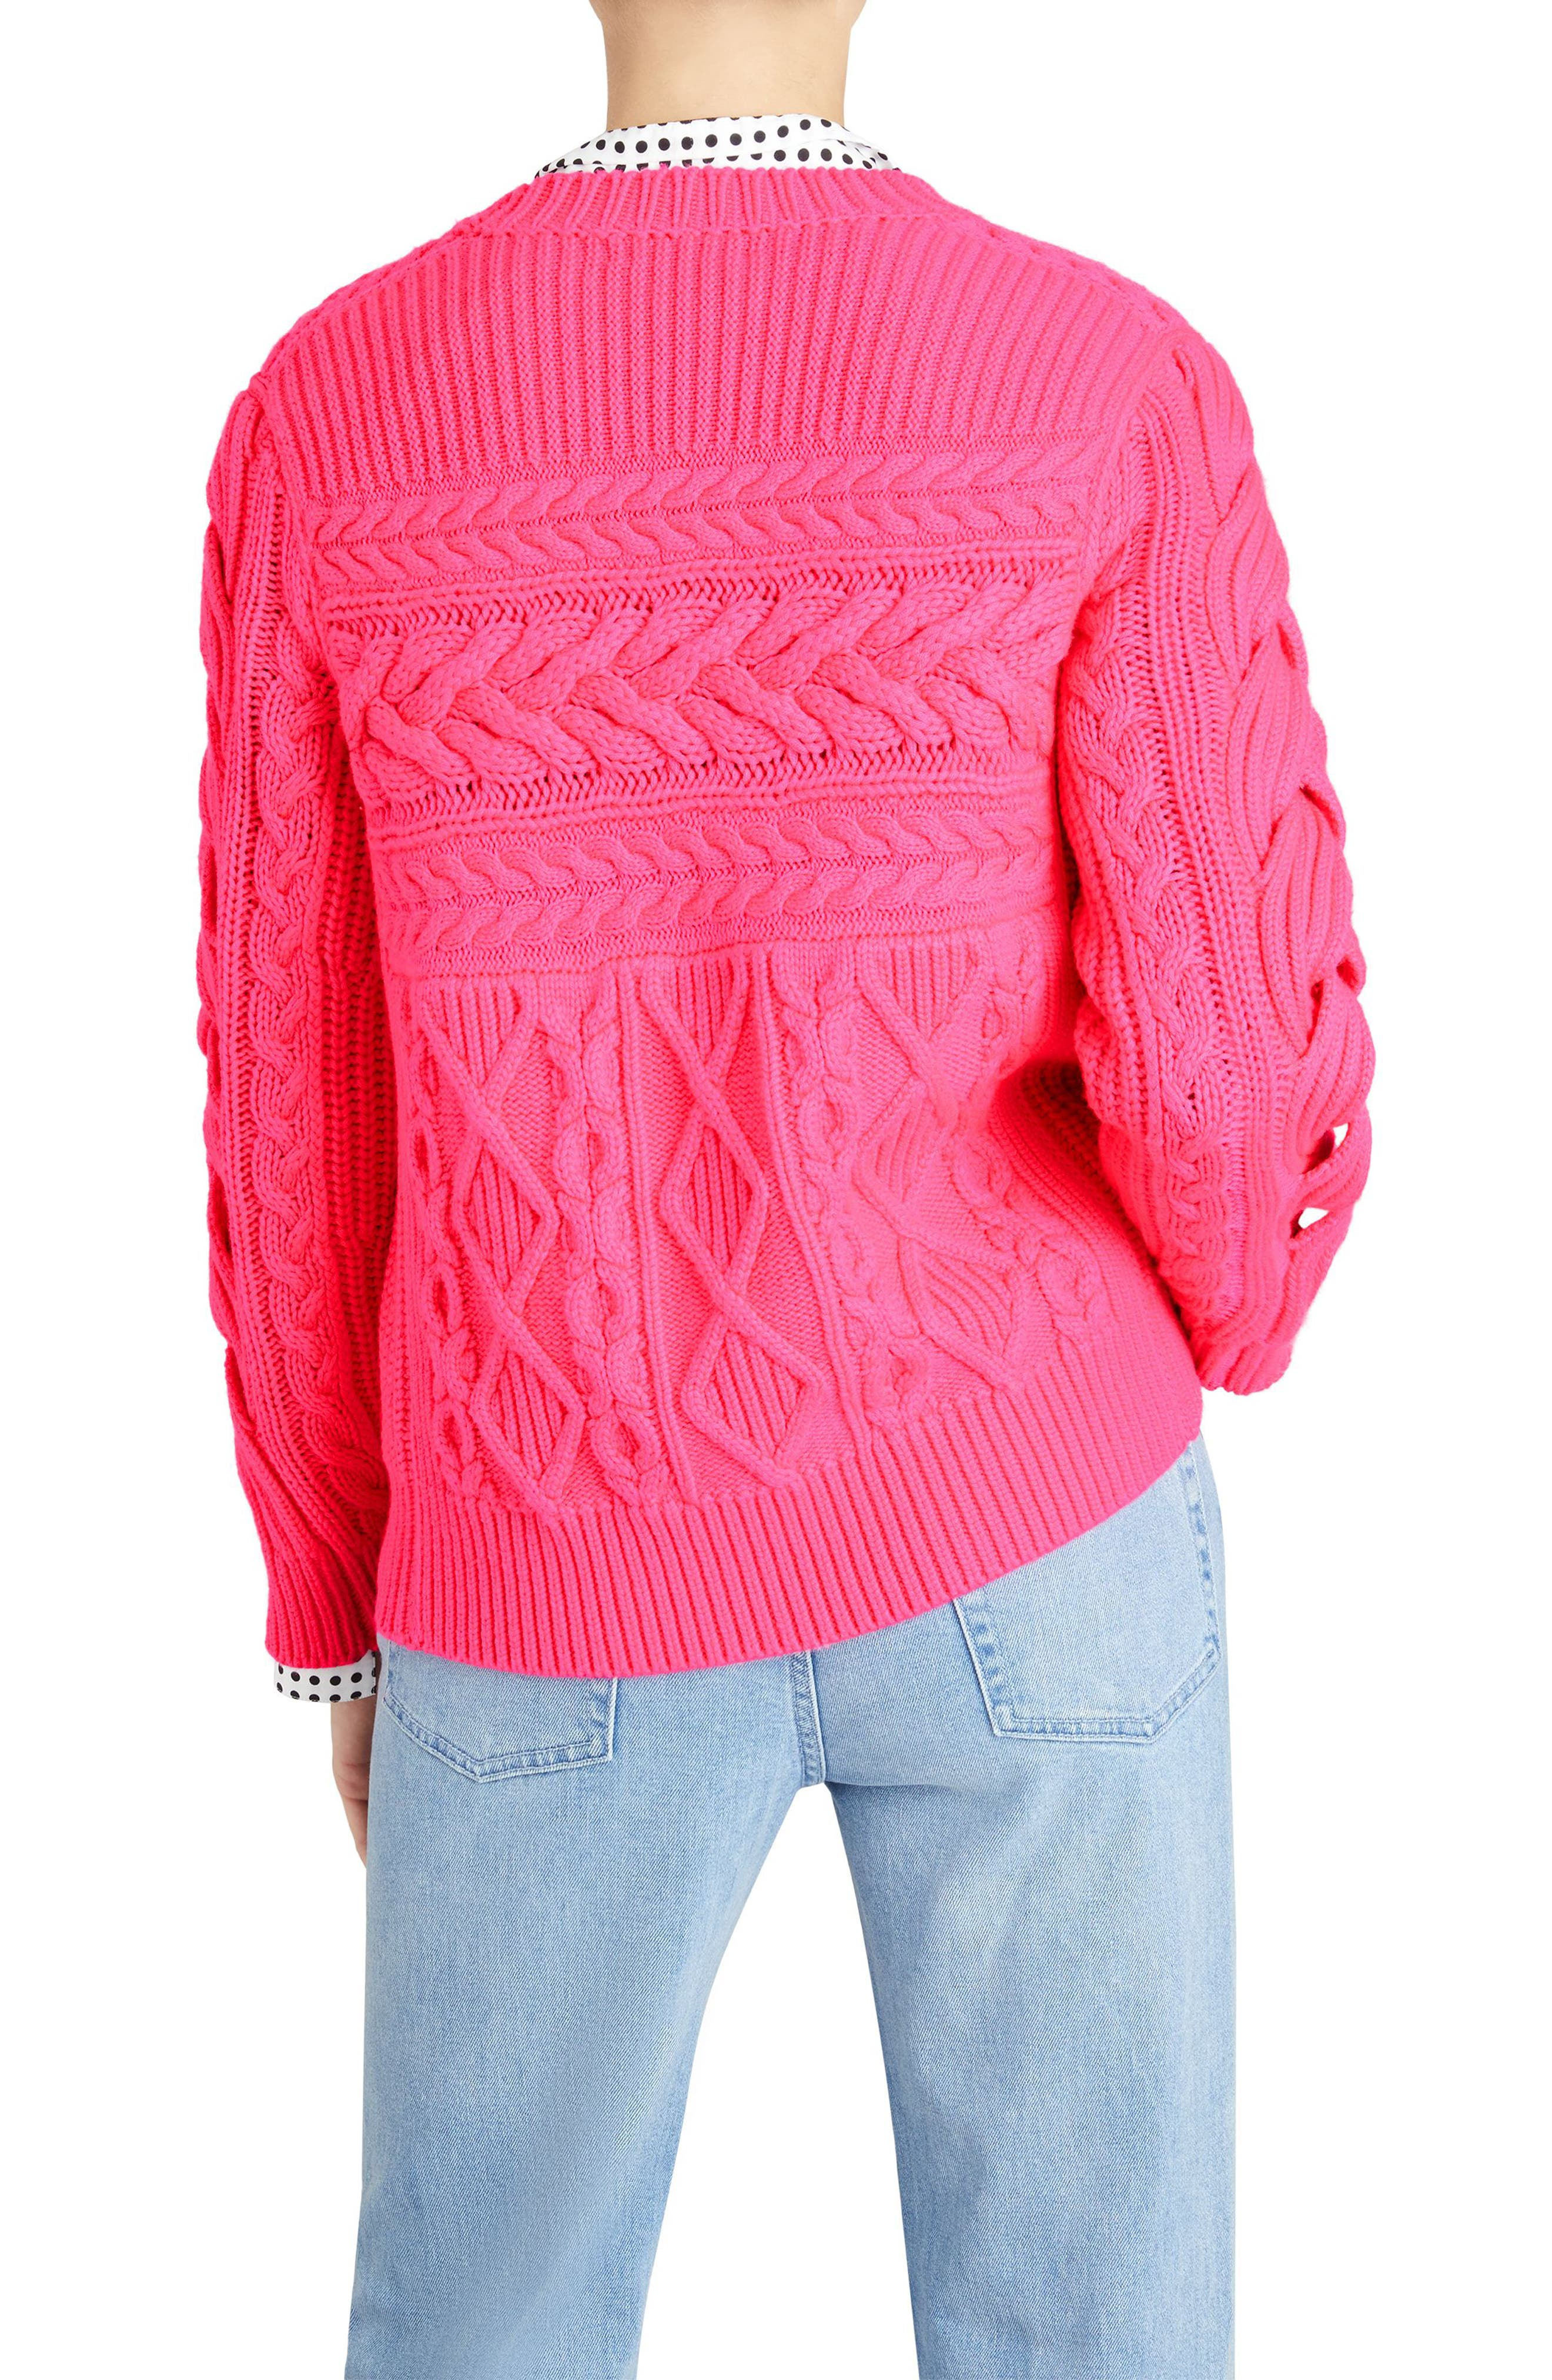 Tolman Aran Knit Sweater,                             Alternate thumbnail 2, color,